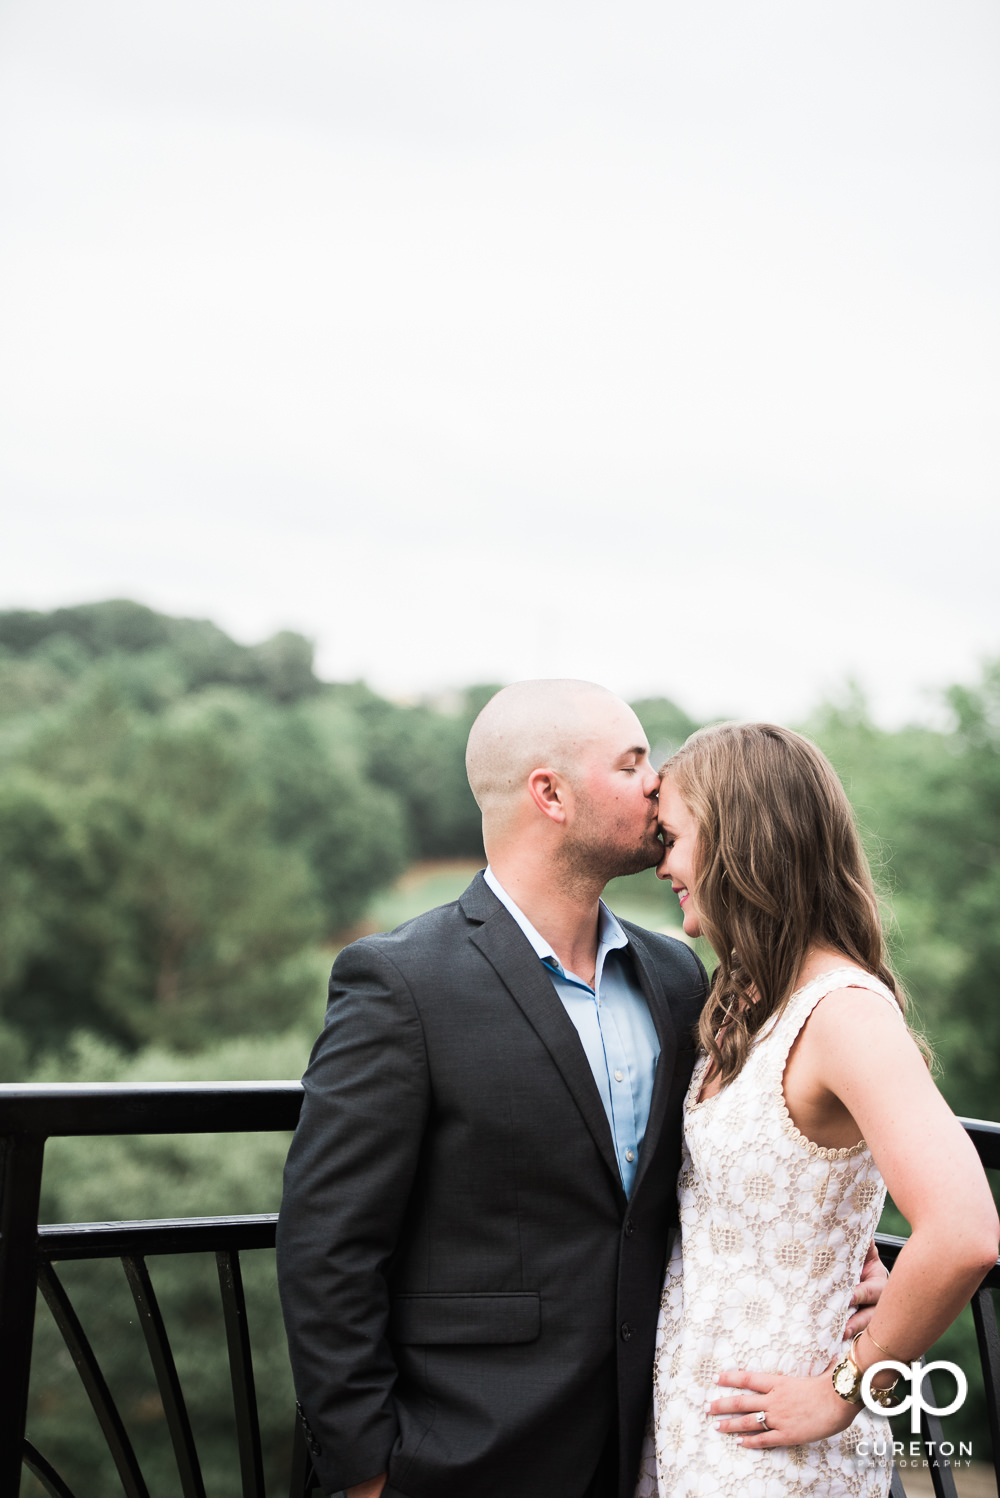 Groom kissing his bride's forehead at their wedding rehearsal dinner at the Thornblade Country Club in Greenville , SC .